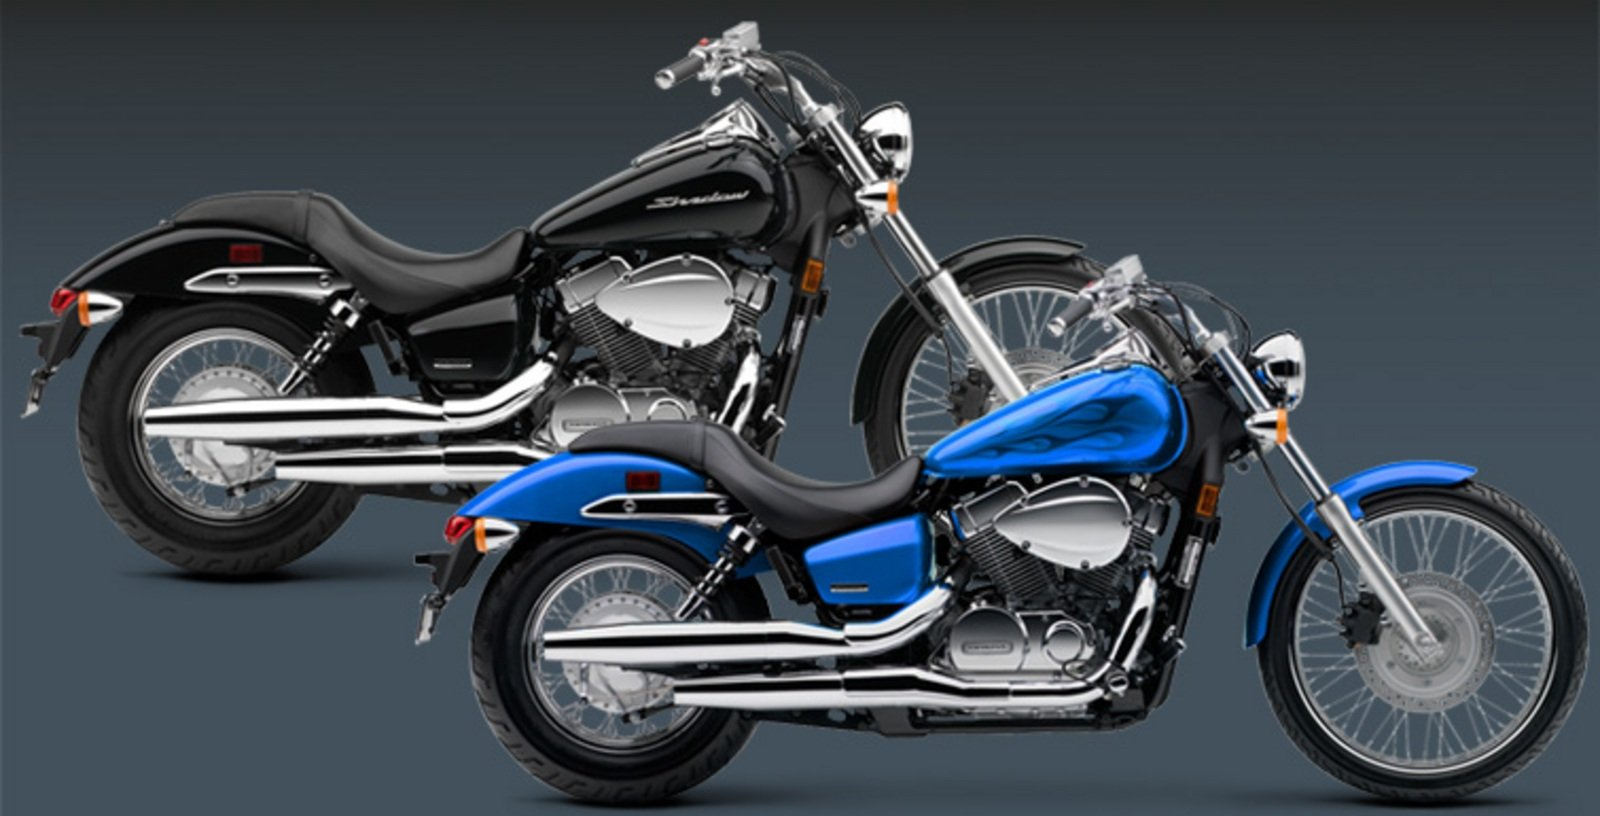 2013 honda shadow spirit 750 review top speed. Black Bedroom Furniture Sets. Home Design Ideas